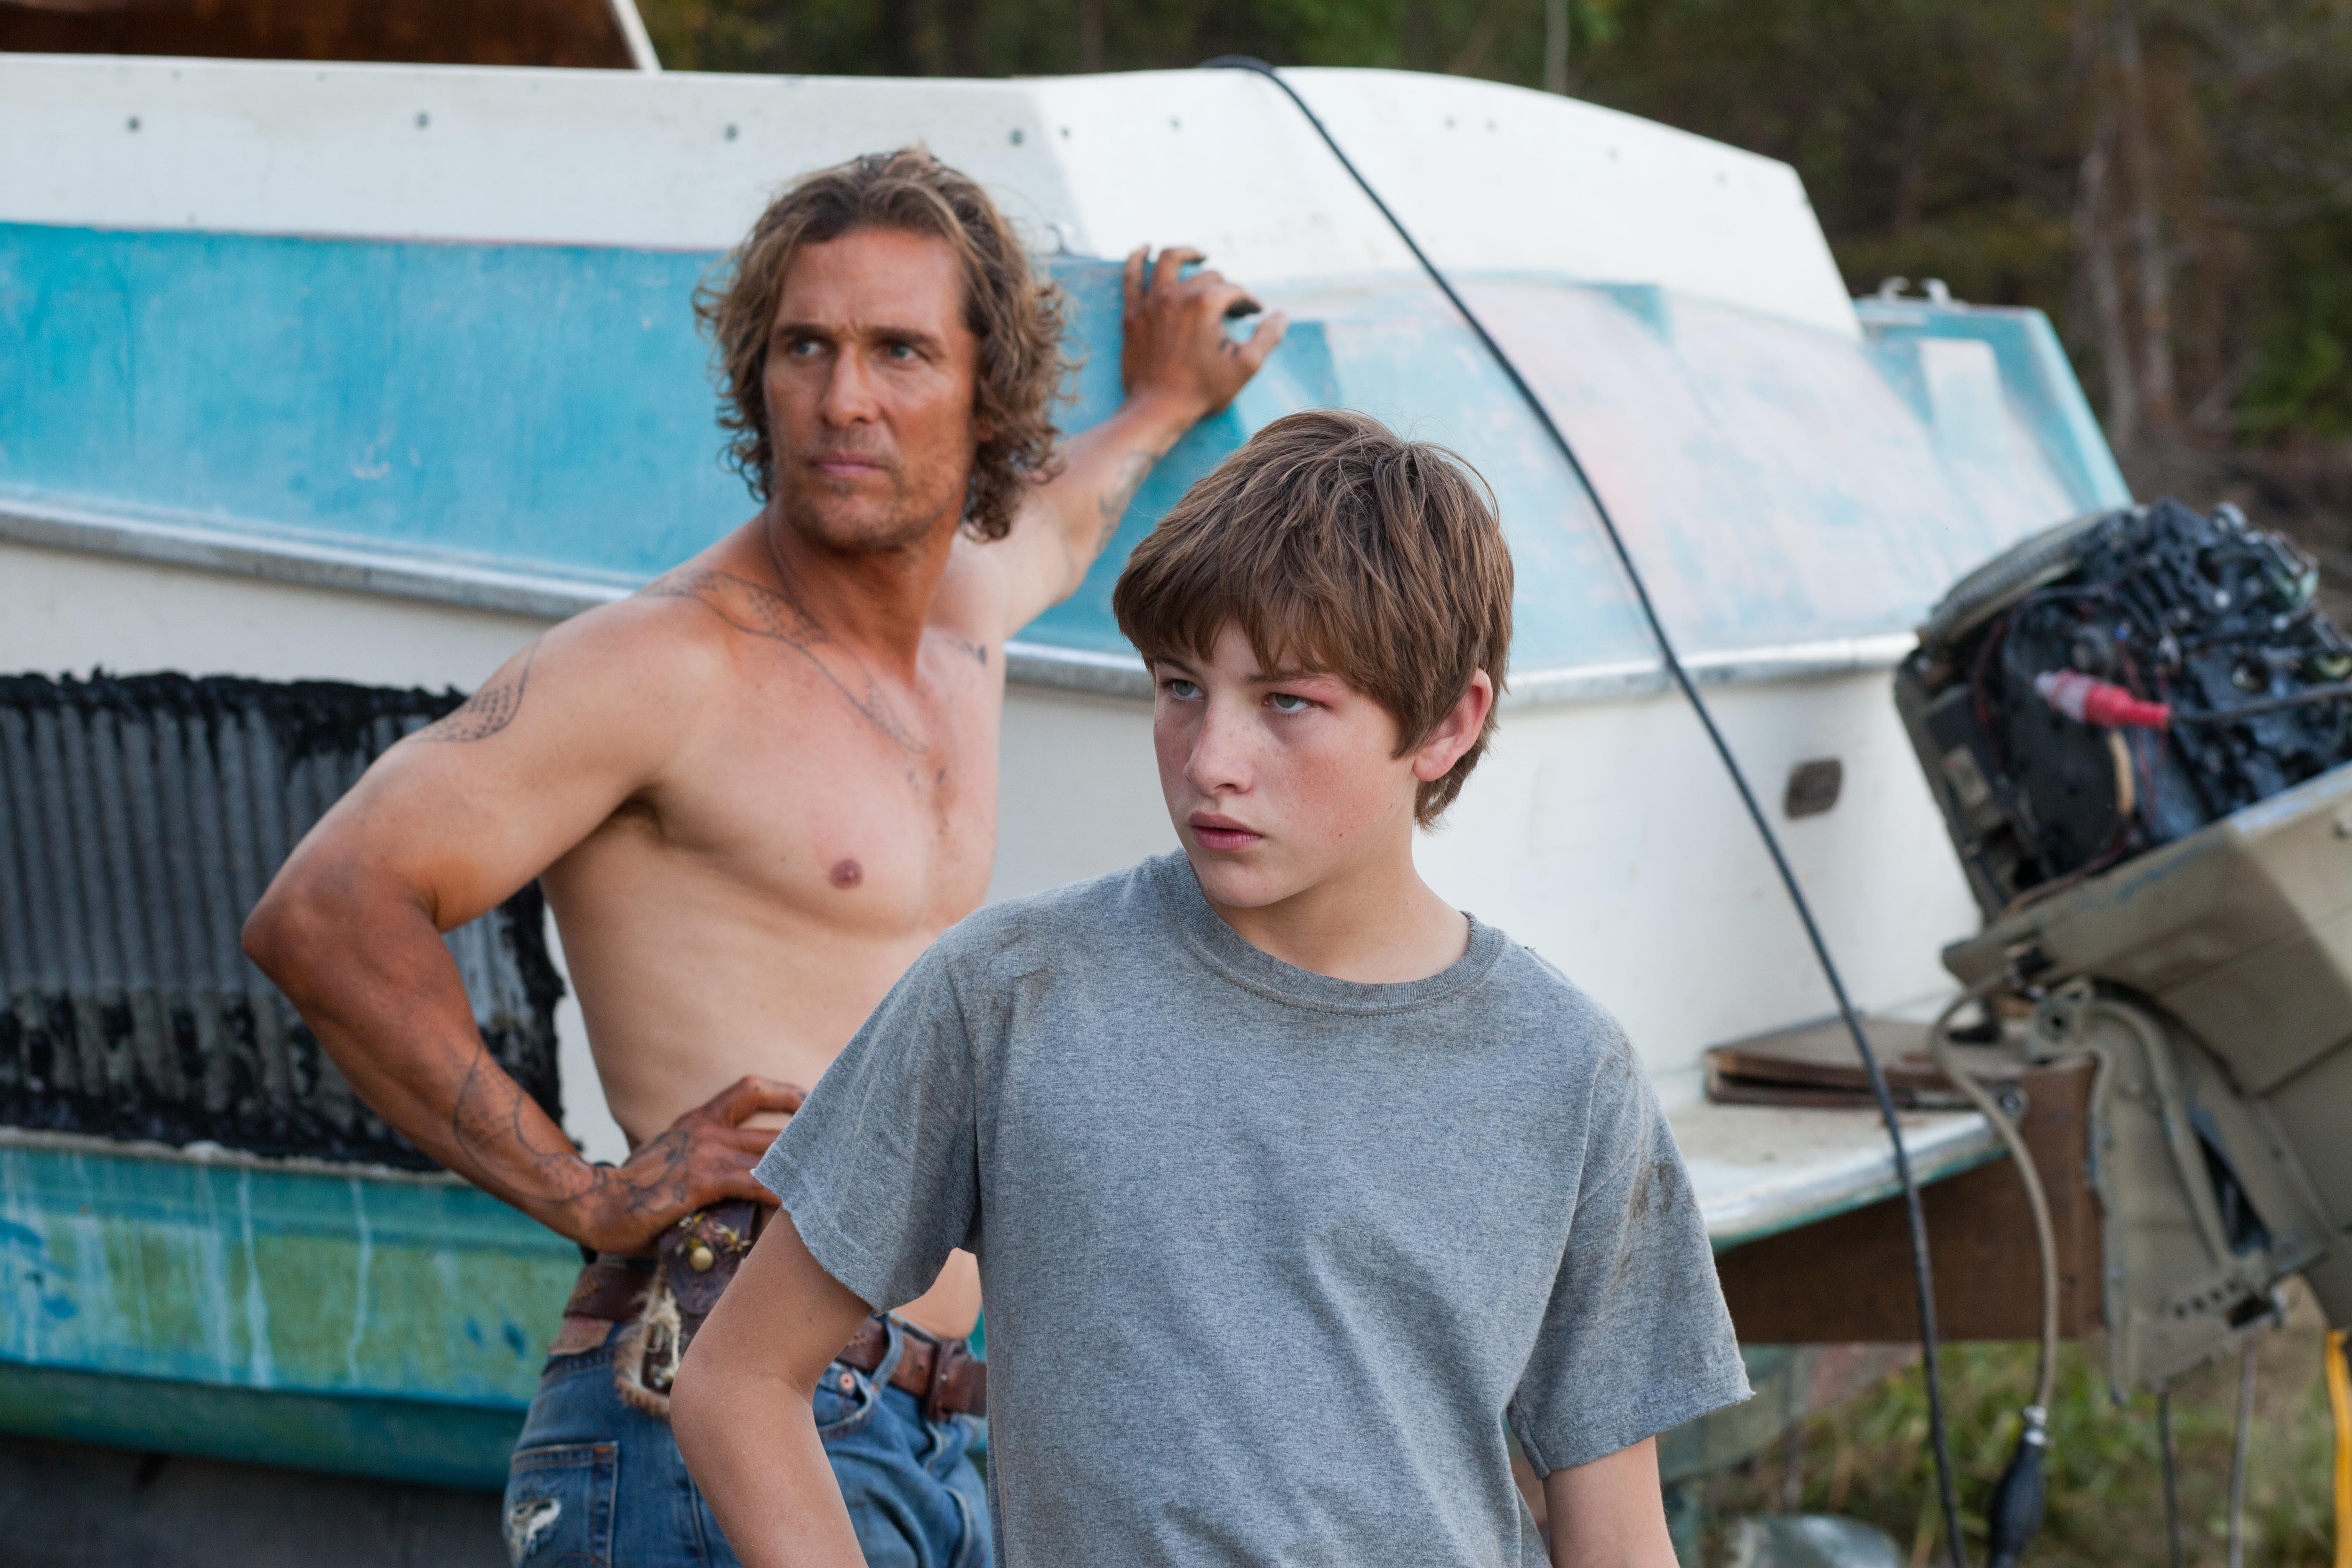 No Merchandising. Editorial Use Only. No Book Cover Usage.Mandatory Credit: Photo by Everest Entertainment/Kobal/REX/Shutterstock (5883373d)Matthew McConaughey, Tye SheridanMud - 2012Director: Jeff NicholsEverest EntertainmentUSAScene StillMud - Sur les rives du Mississippi